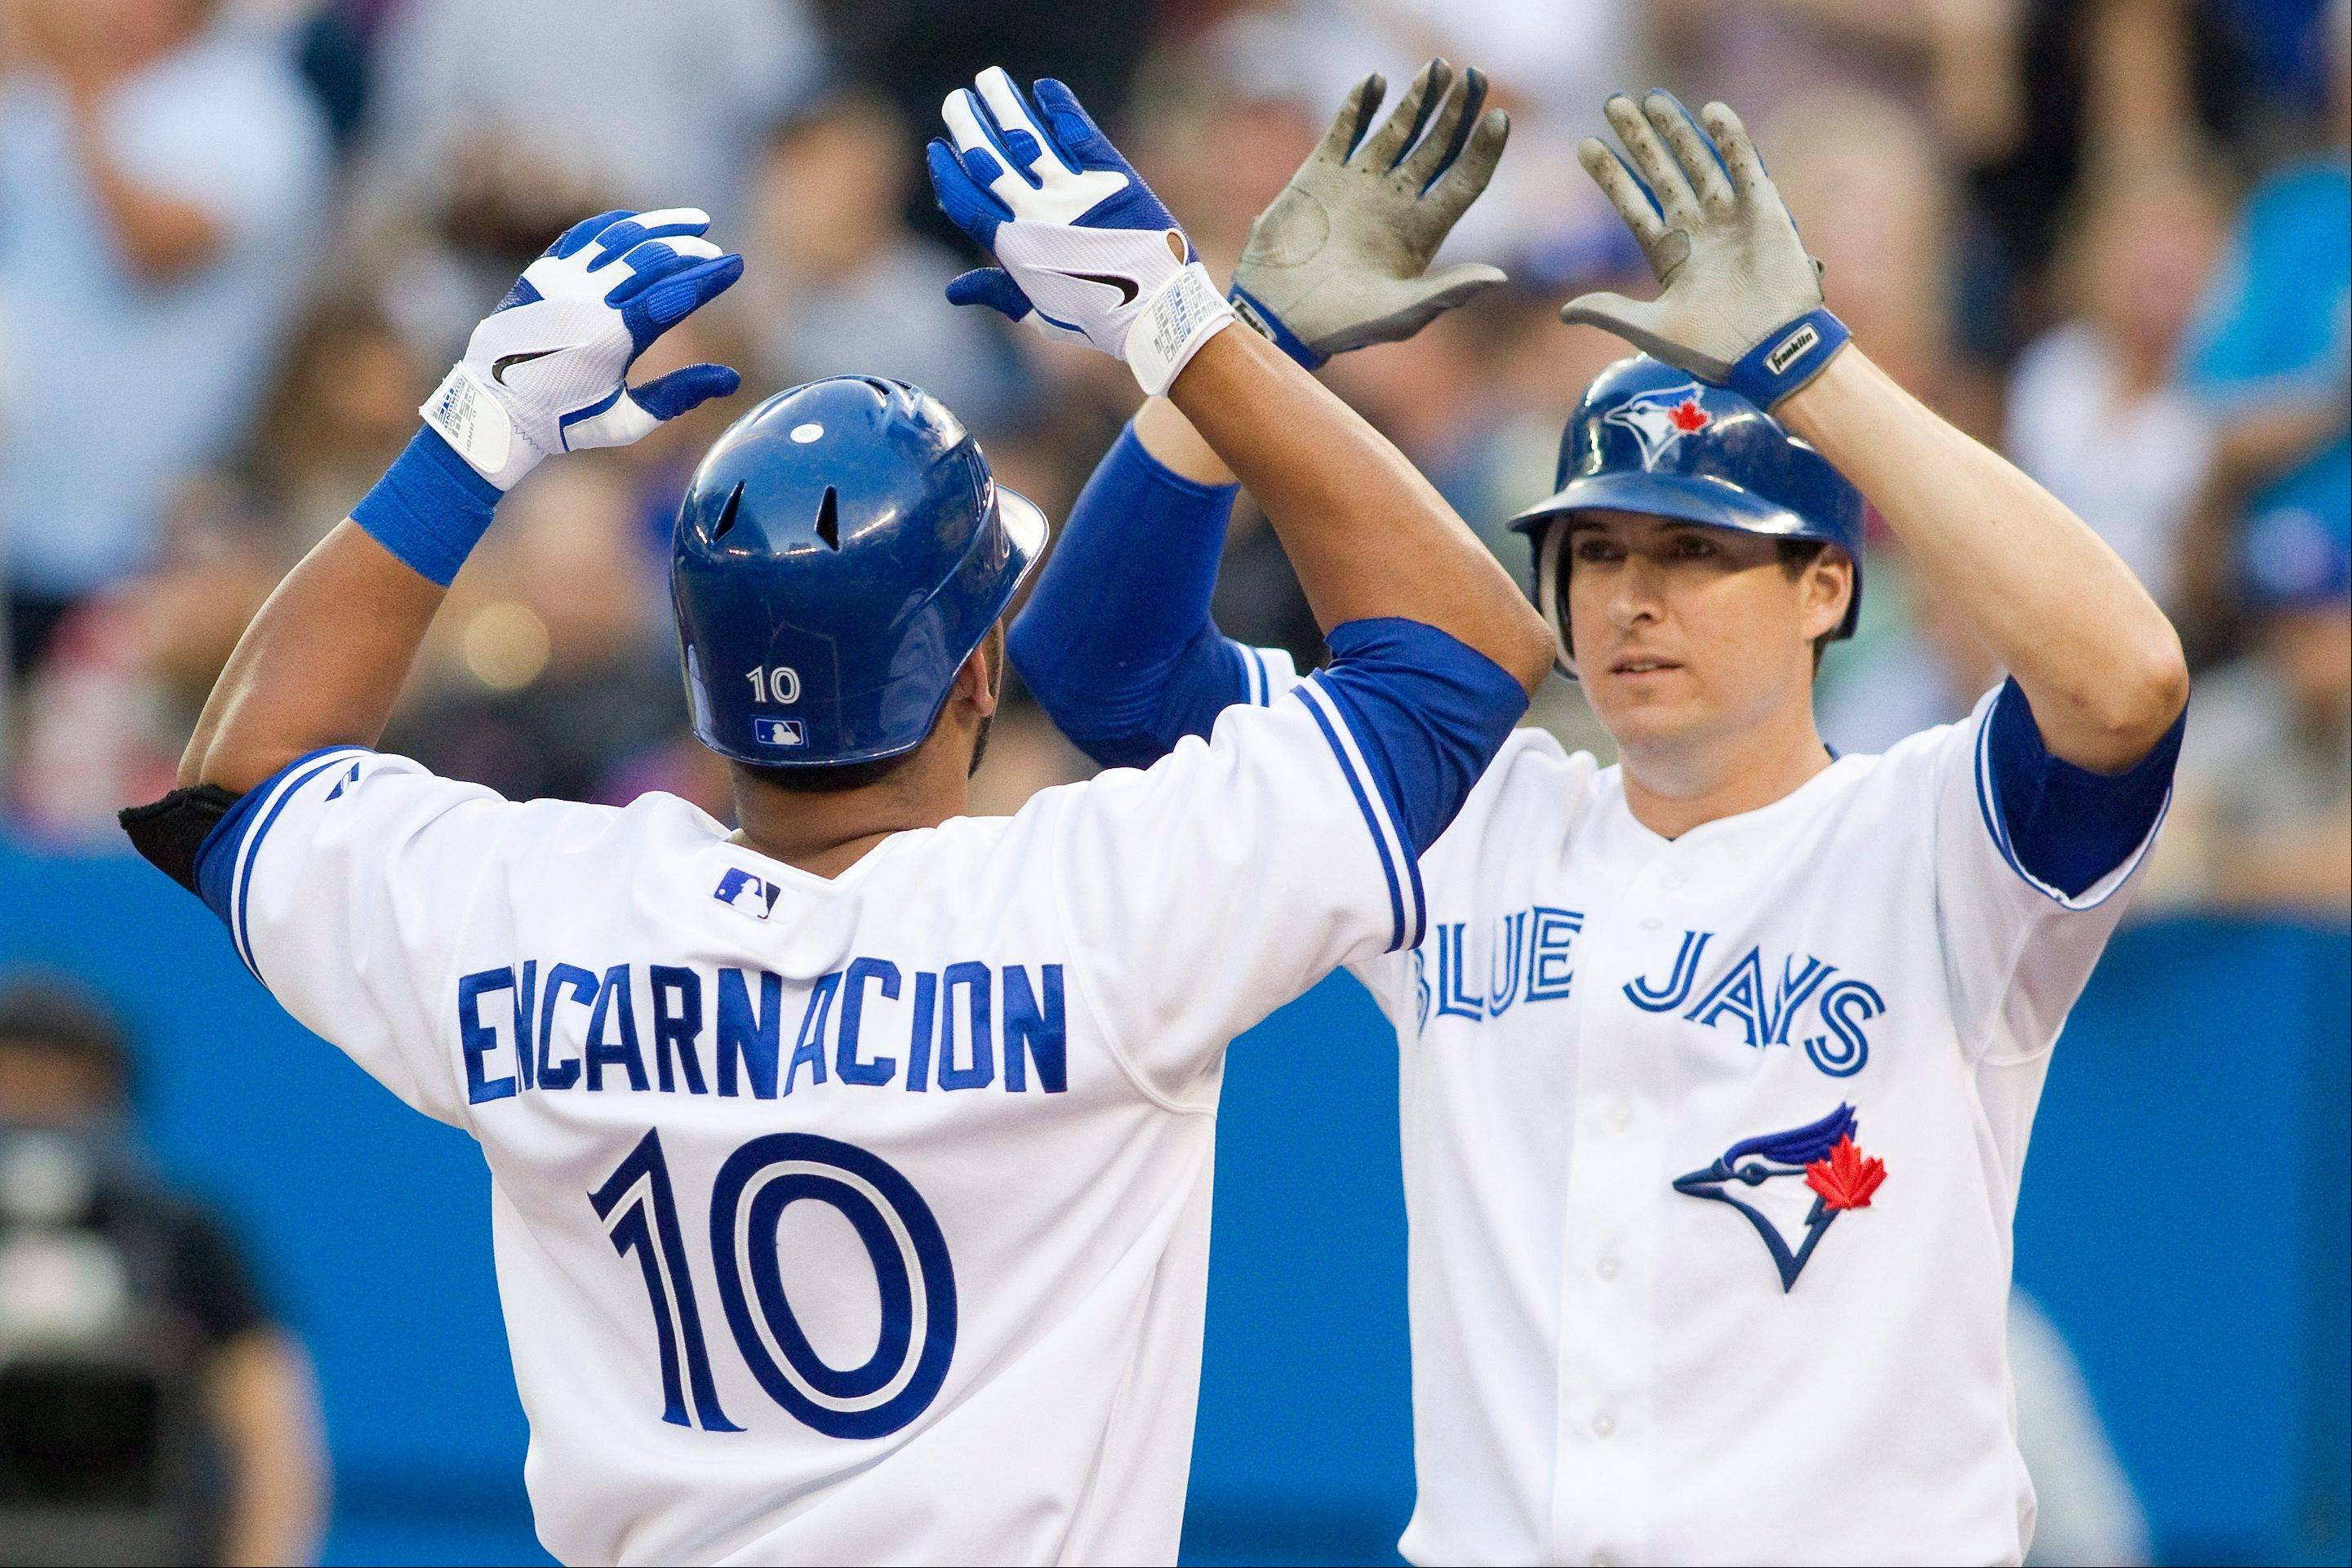 The Blue Jays' Kelly Johnson, right, congratulates teammate Edwin Encarnacion for hitting a two-run home run off Texas Rangers starting pitcher Yu Darvish on Friday in Toronto.